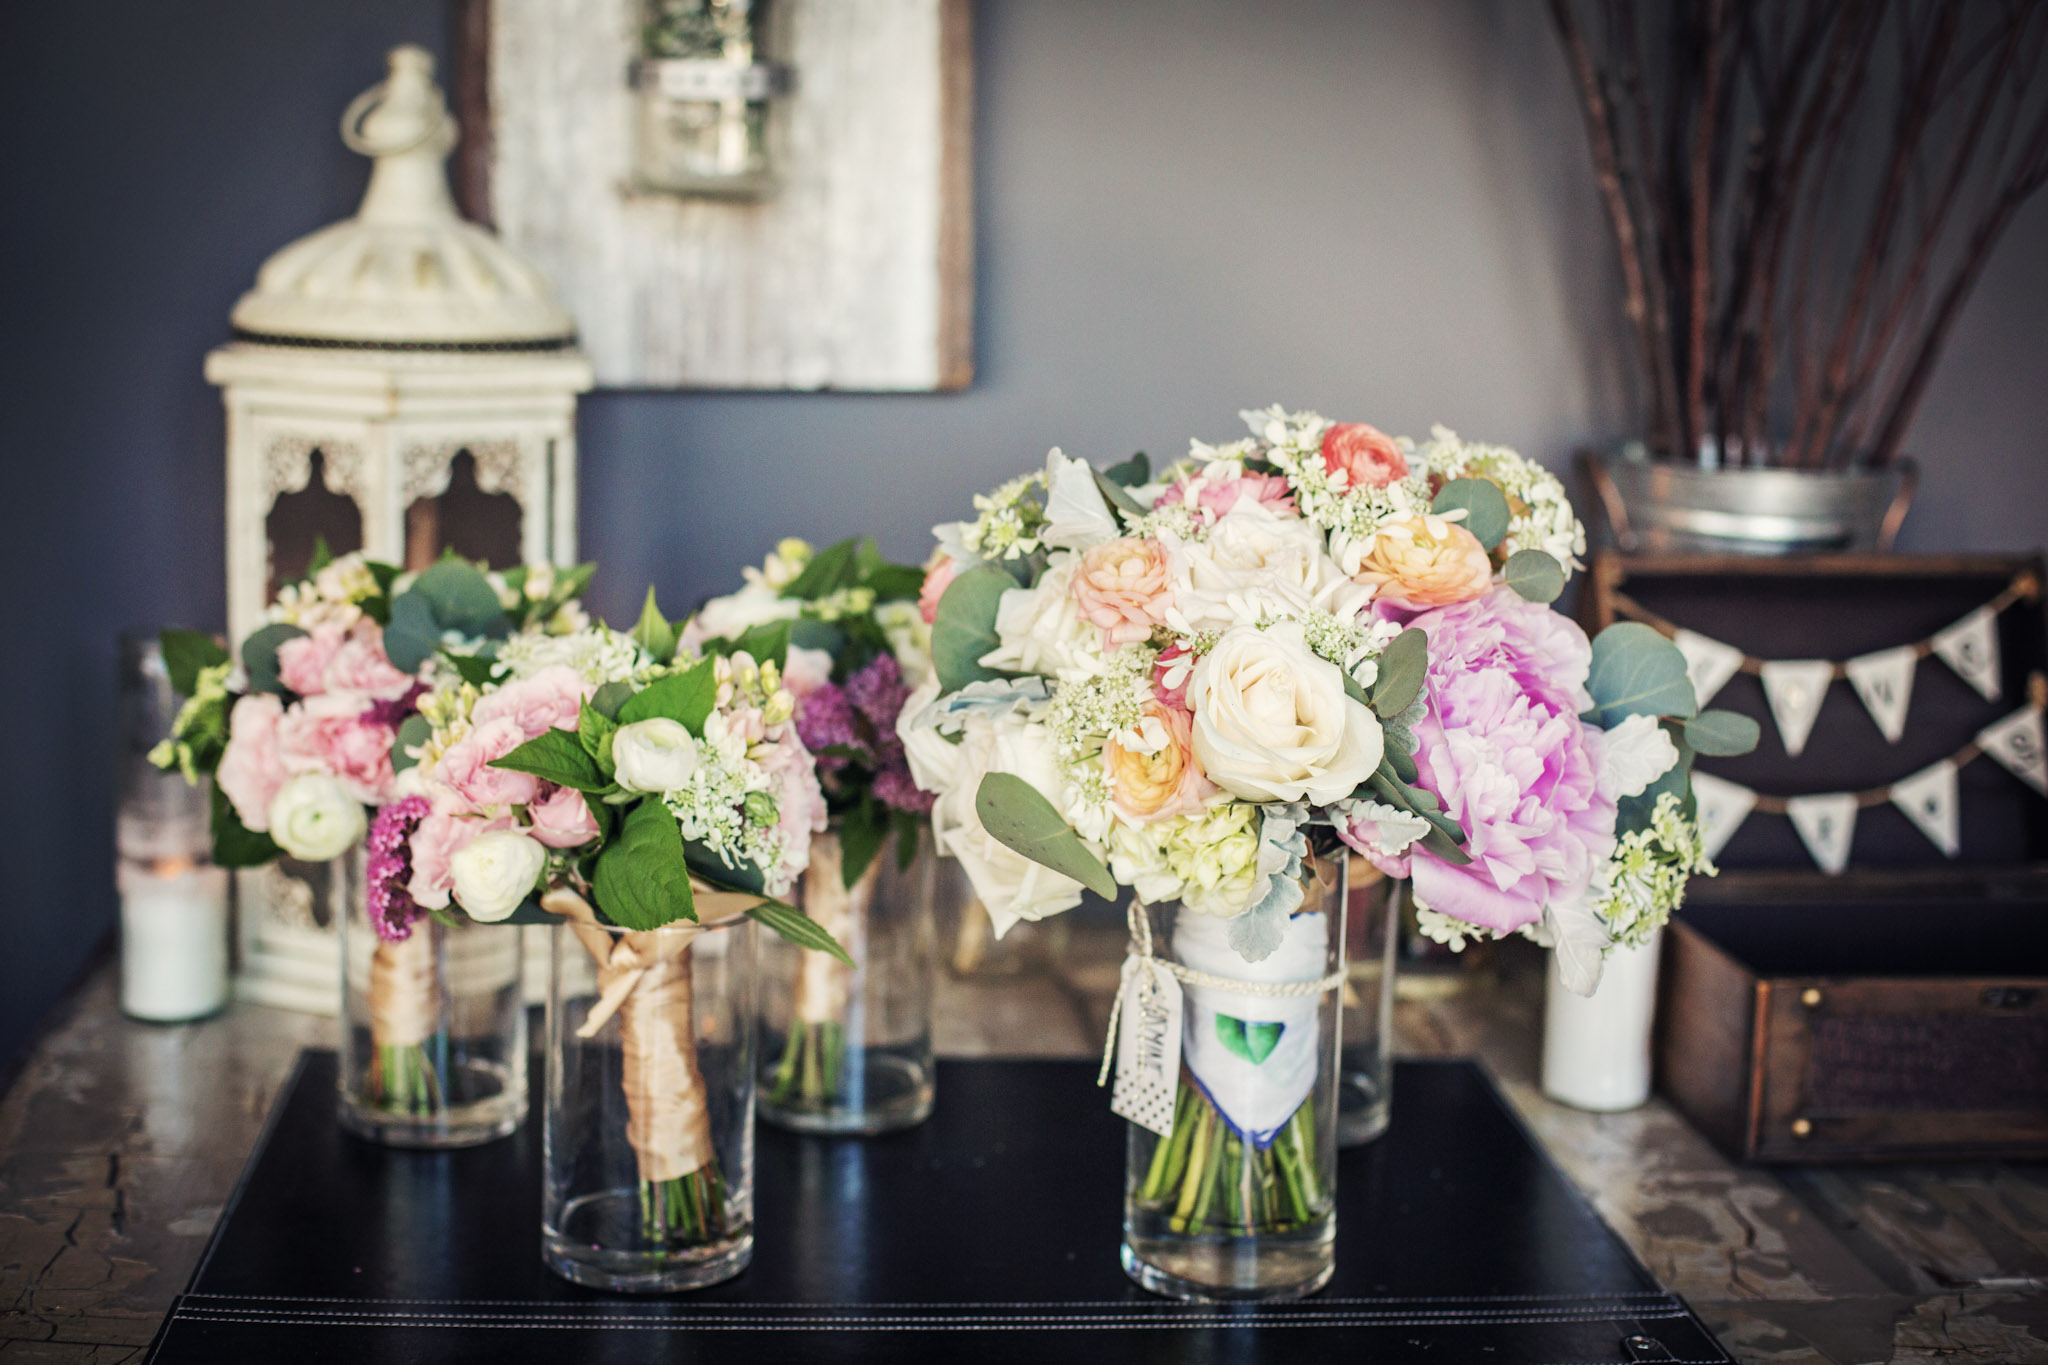 Kansas_City_Small_Wedding_Venue_Elope_Intimate_Ceremony_Budget_Affordable_Summer_Flowers_Jasmine&Reshard_001b.jpg